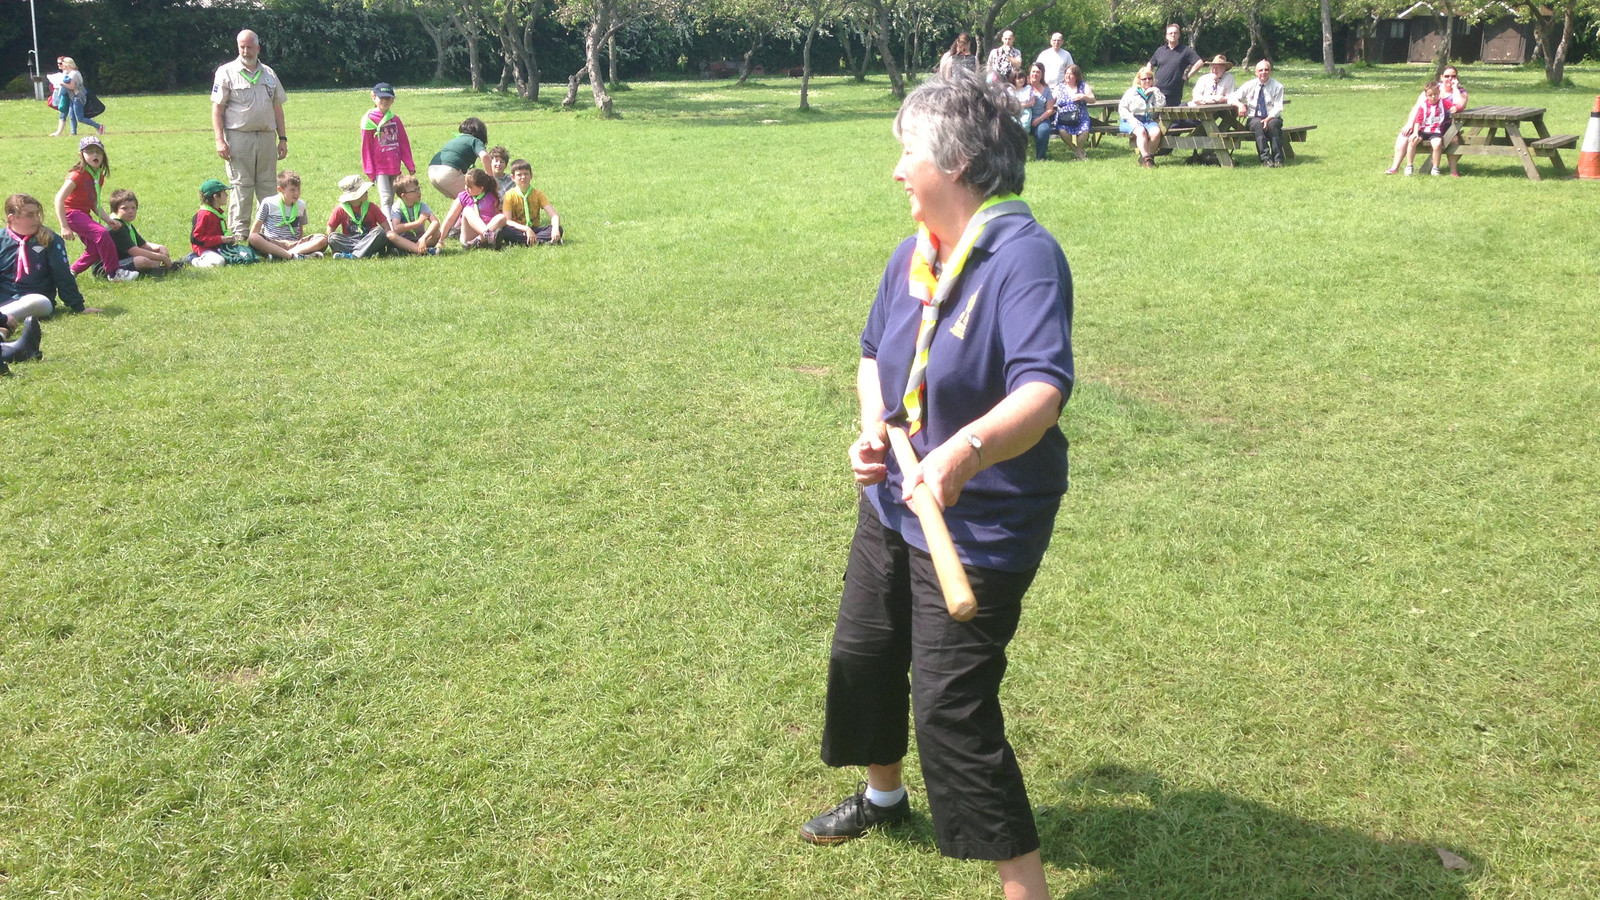 Rose Playing The Broom Handle!